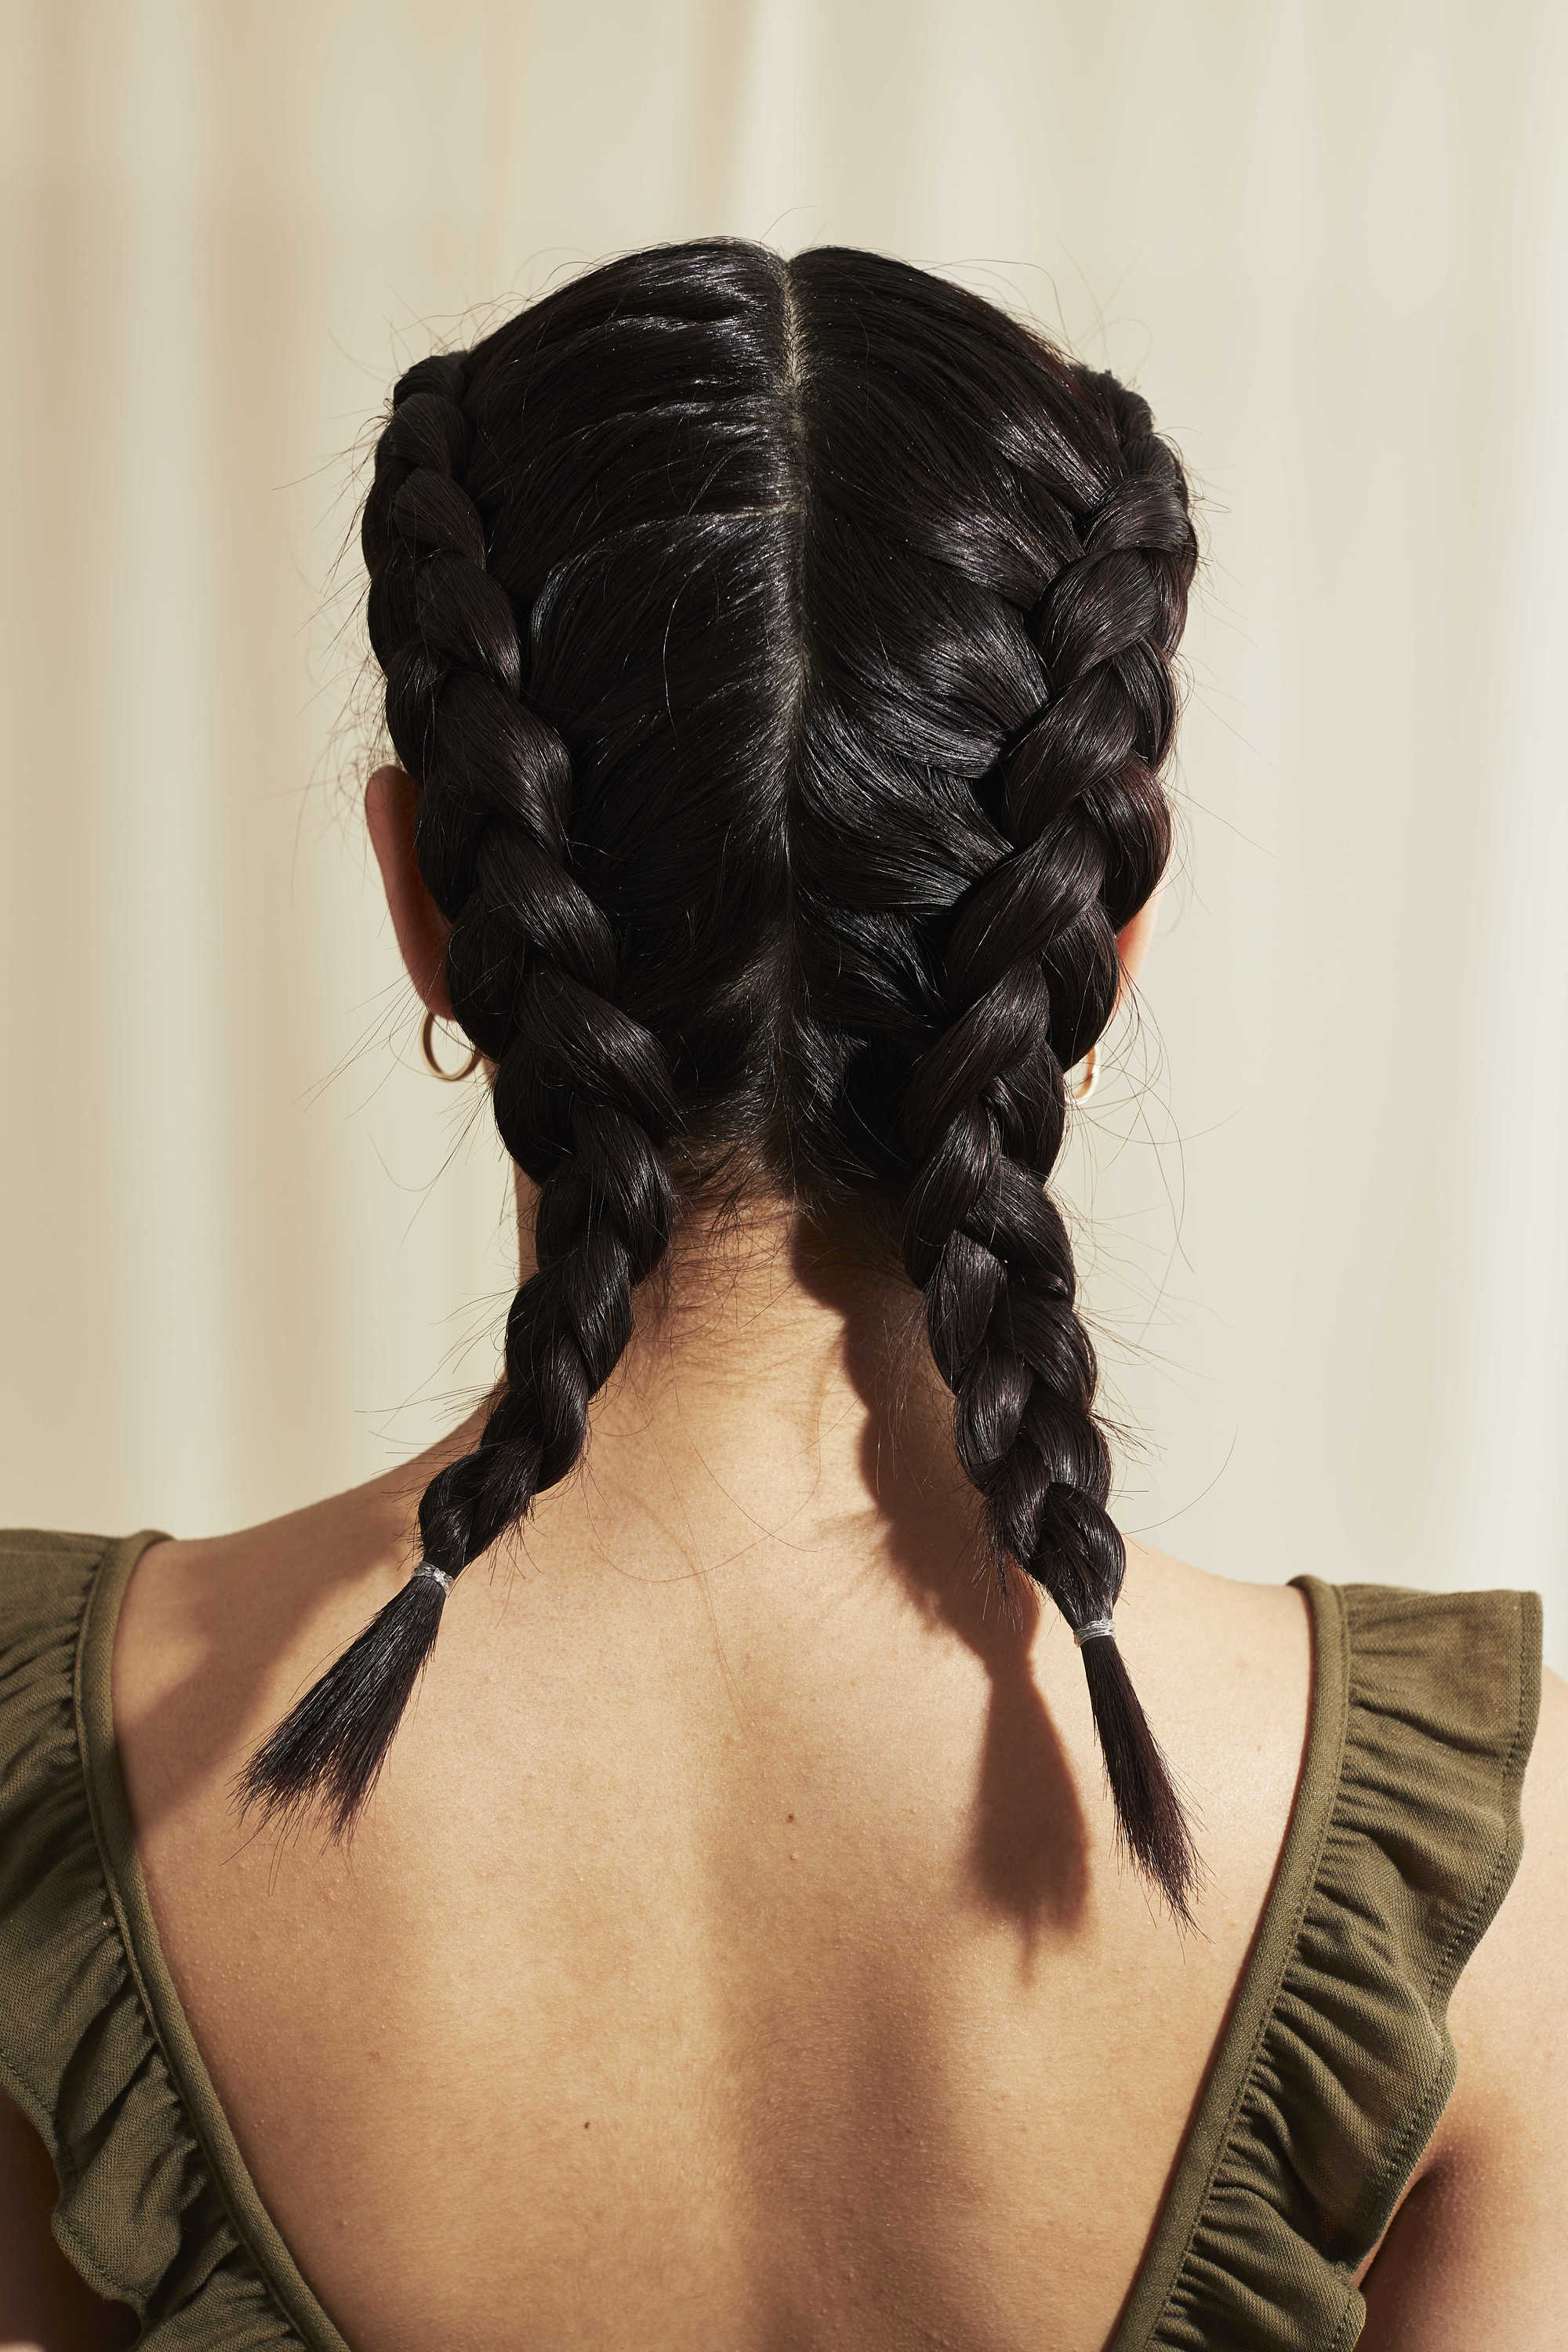 39 Cute And Easy Hairstyles For School You Can Actually Do Yourself